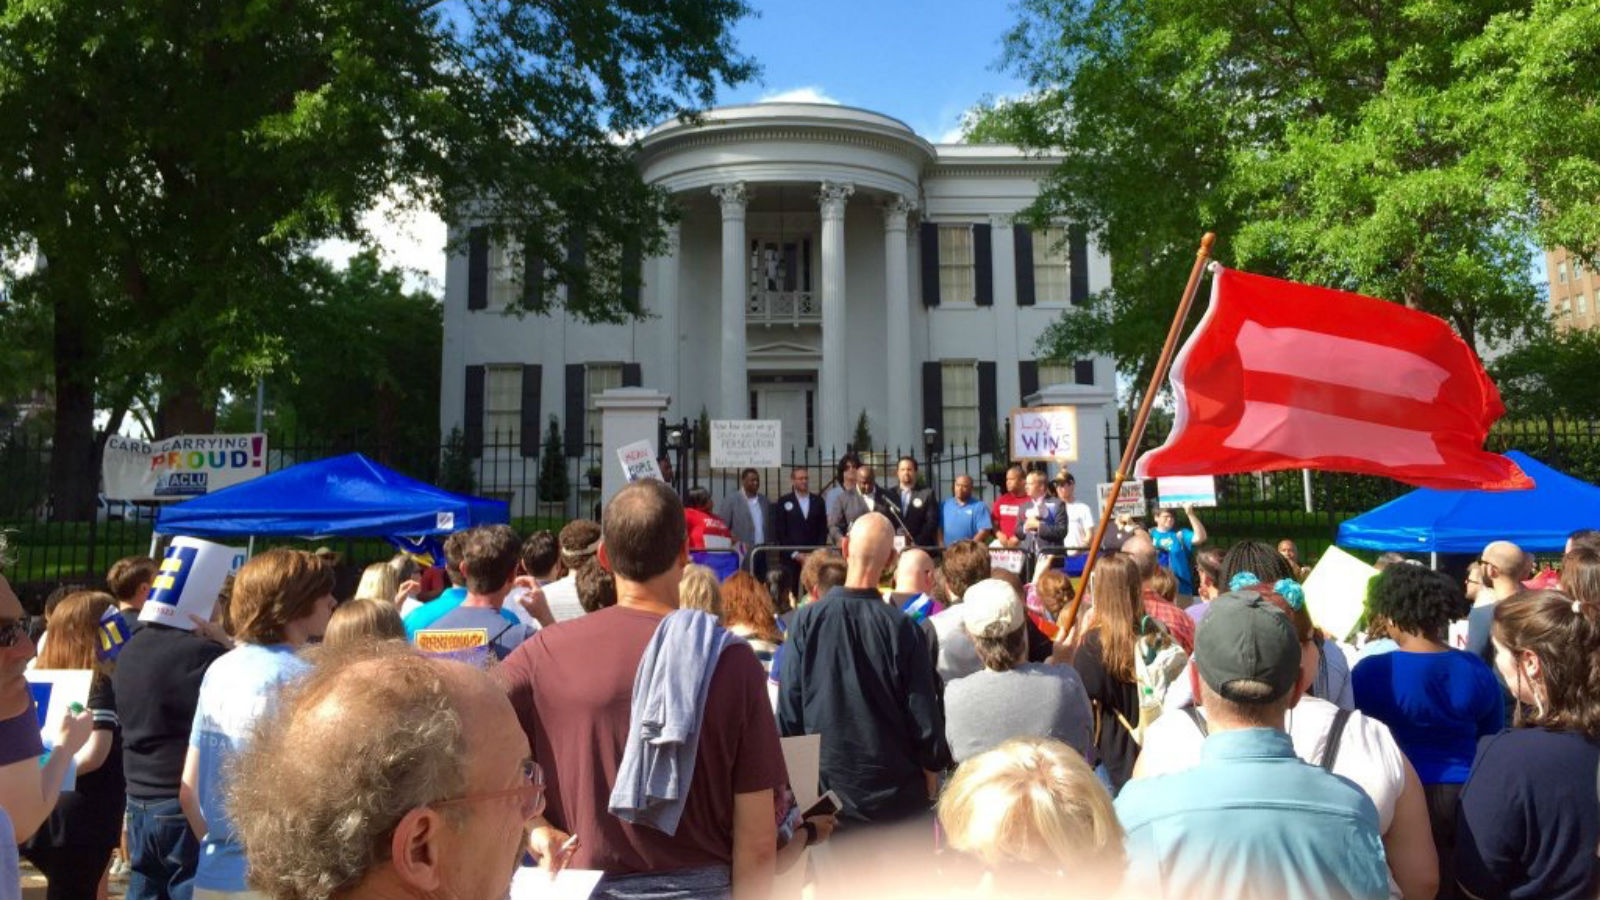 Cellule A Grain Exterieur Hundreds Rally In Ms To Demand Repeal Of Discriminatory H B 1523